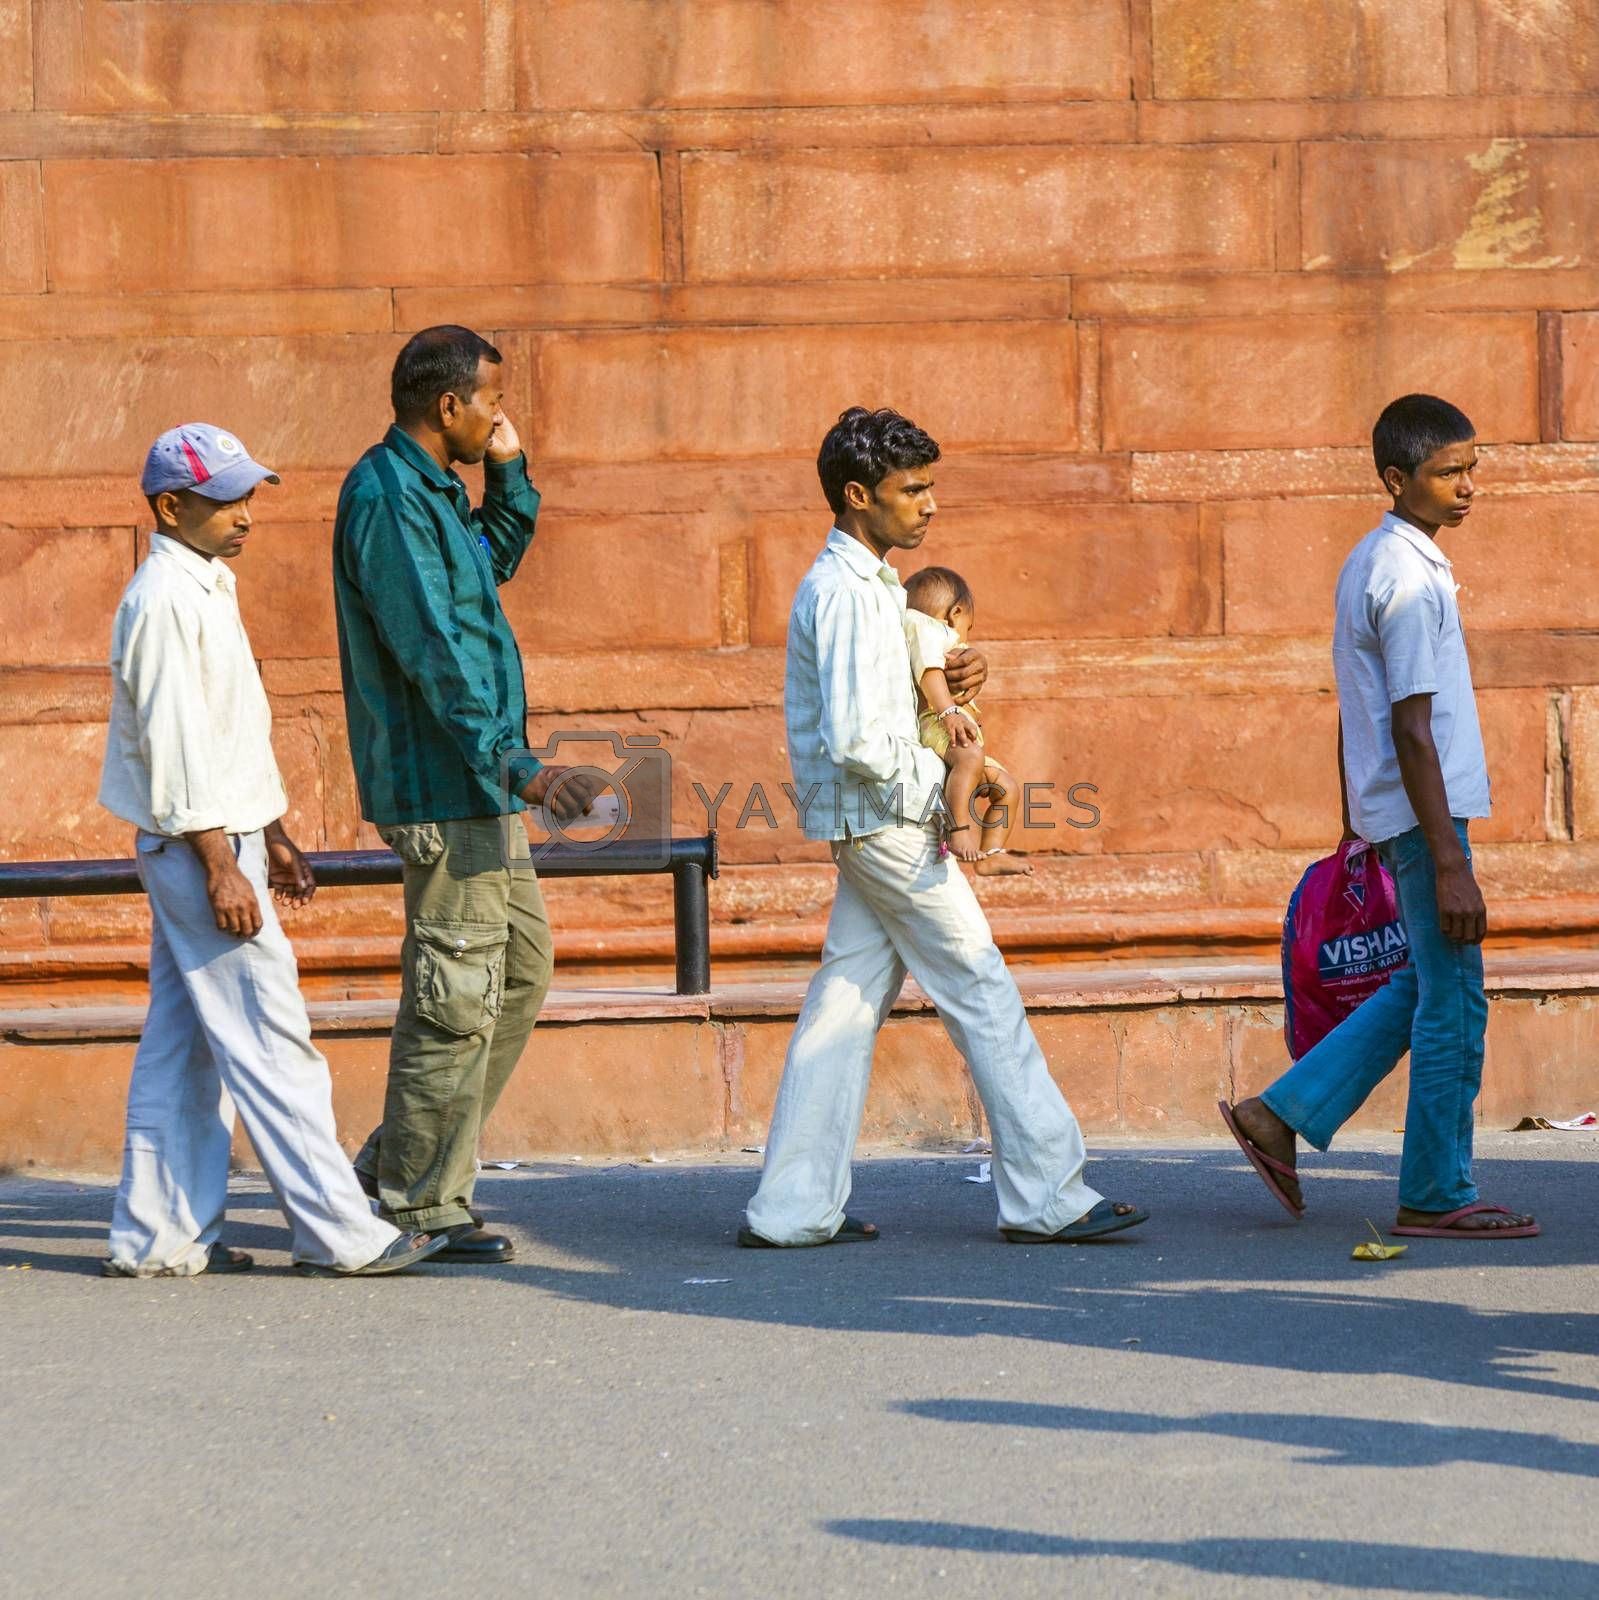 DELHI, INDIA - NOV 9, 2011: people visit the Red Fort in Delhi, India. Red Fort is a 17th century fort complex and was designated a UNESCO World Heritage Site in 2007.